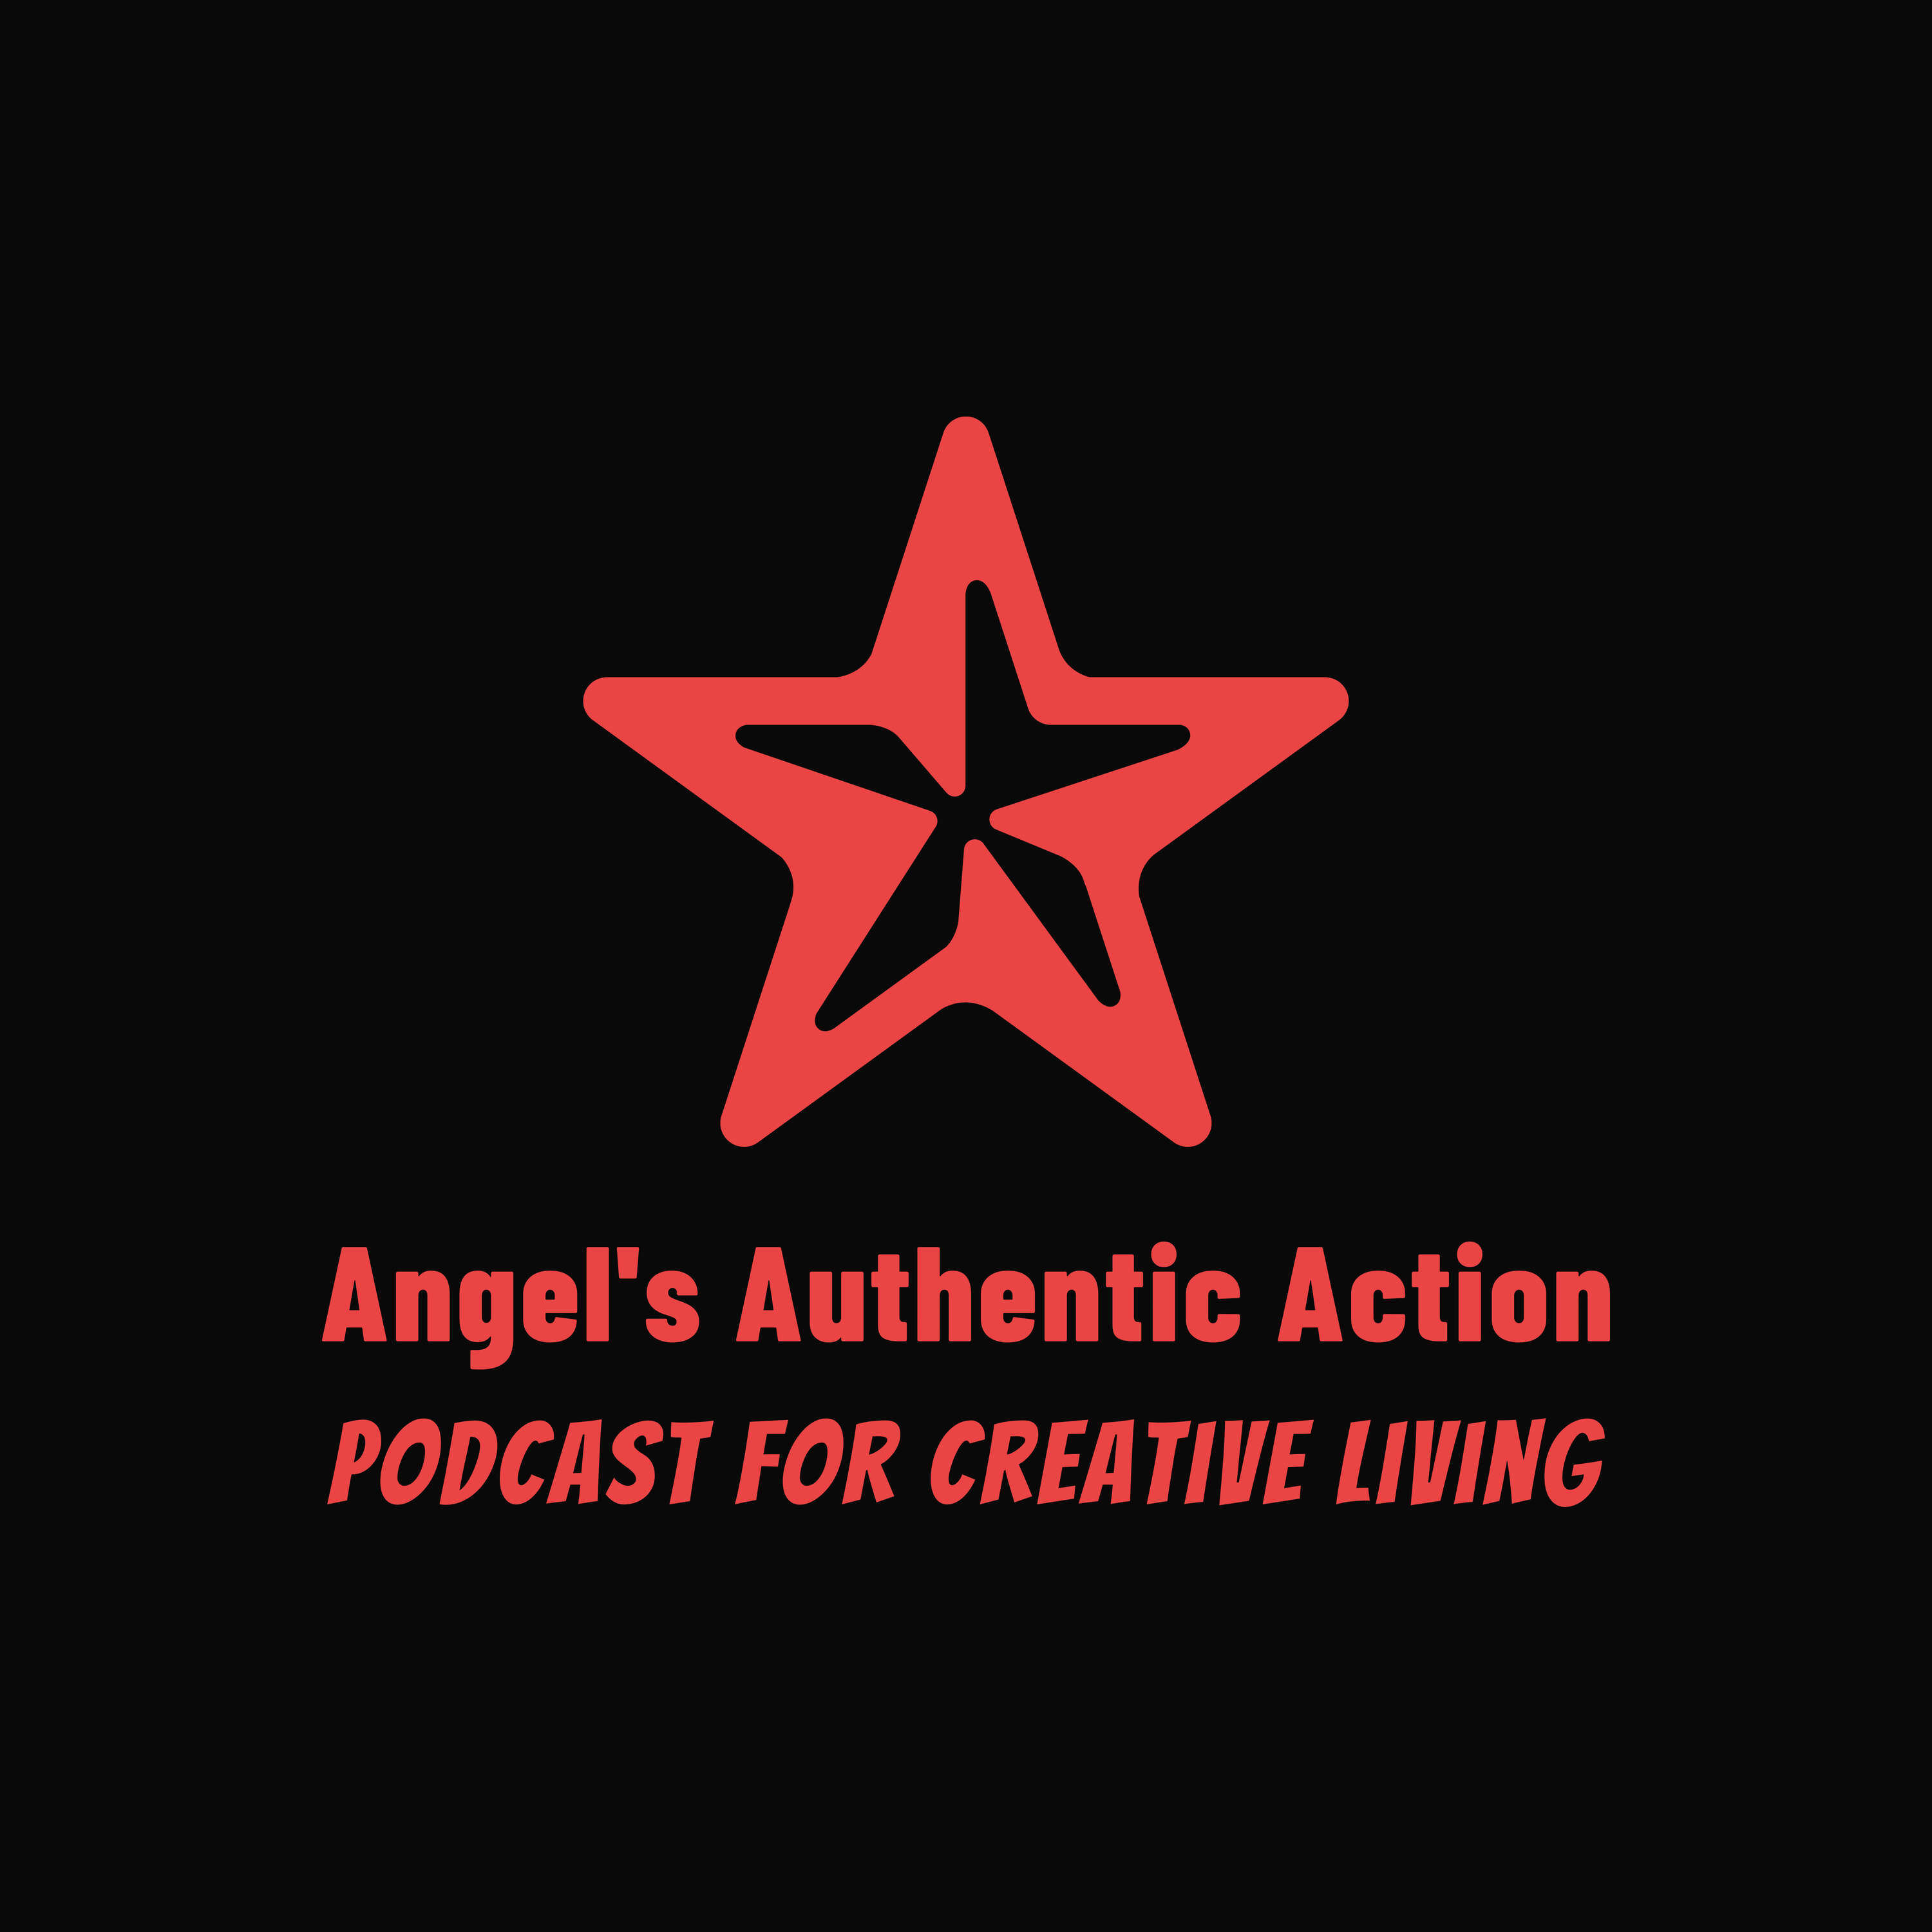 Angel's Authentic Action Podcast